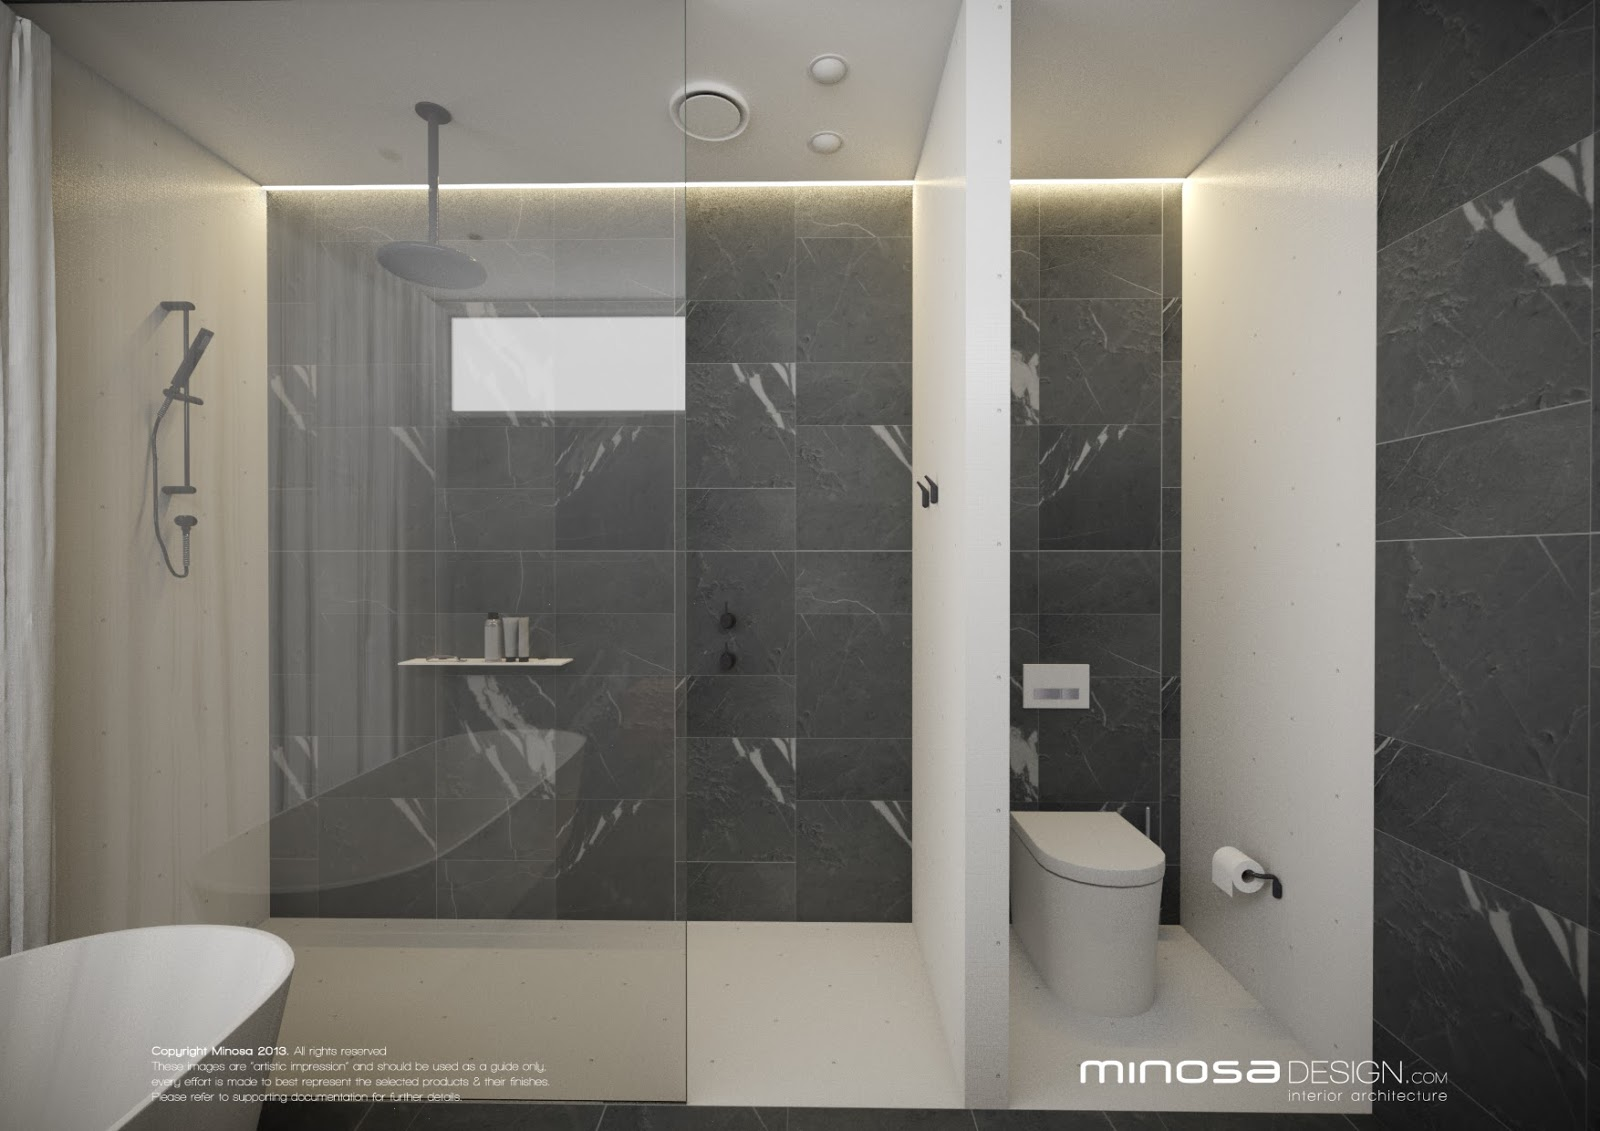 Minosa modern bathroom design to share for New bathroom design ideas